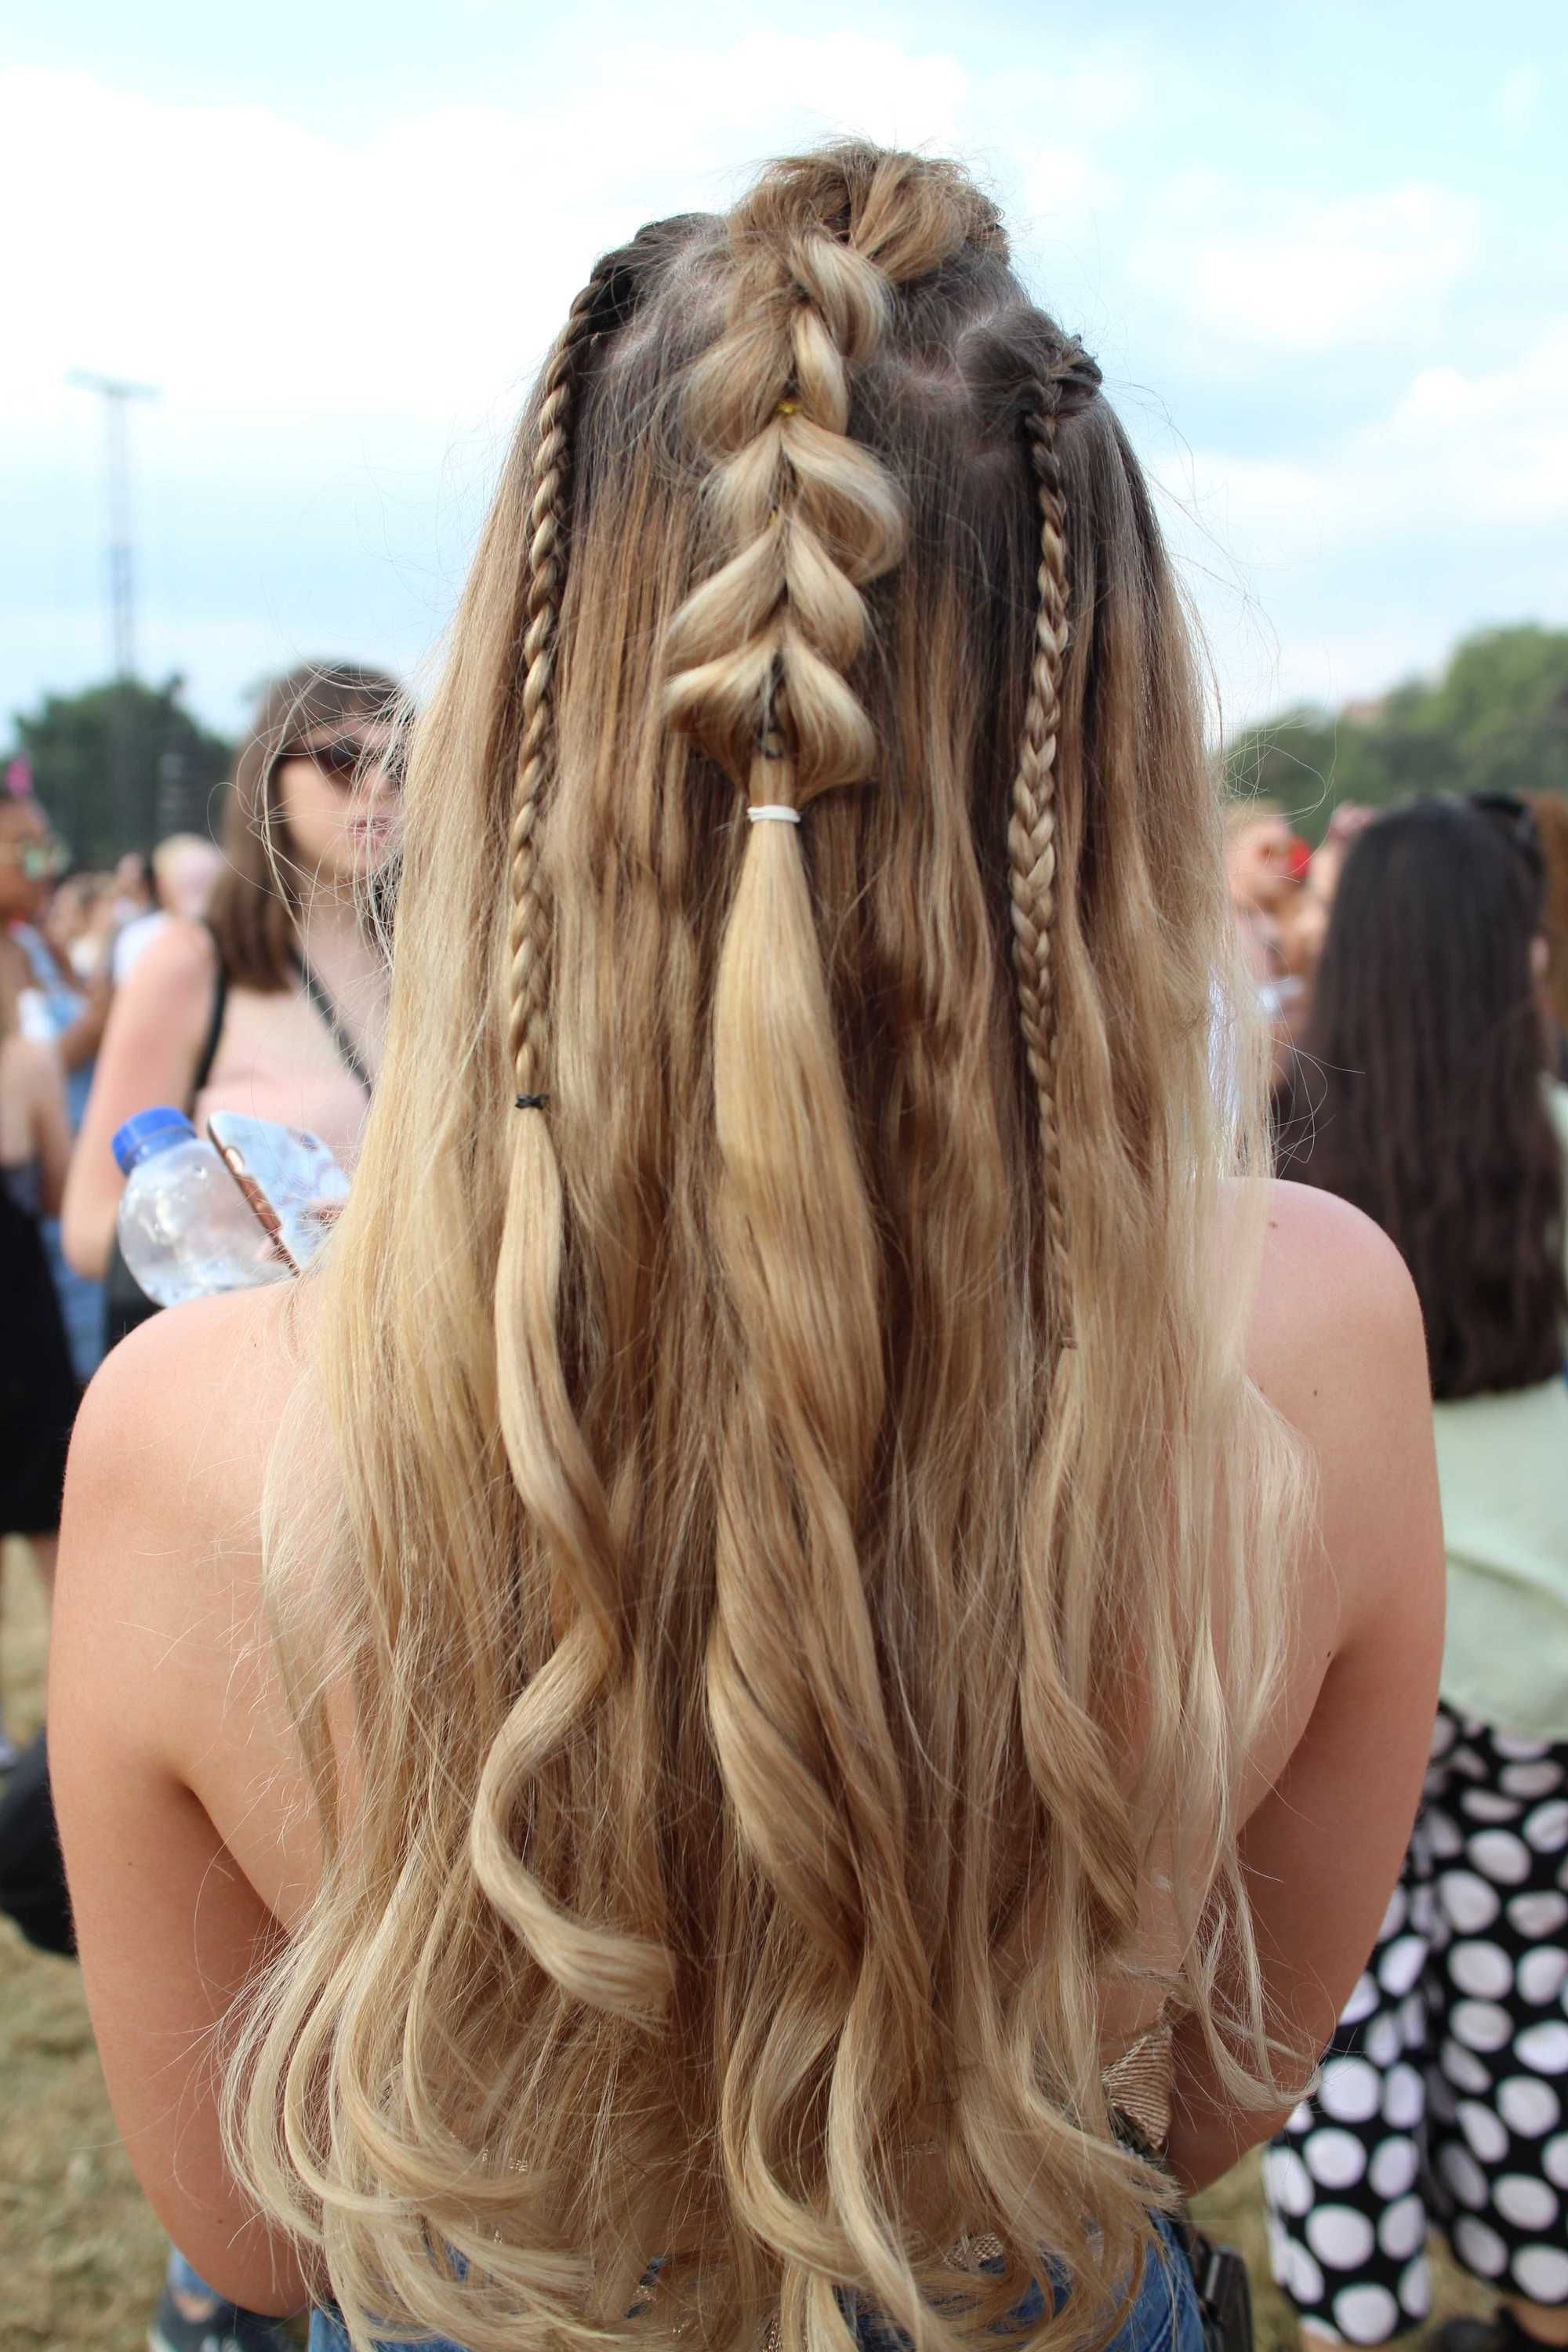 Fashionable Blonde Accent Braid Hairstyles Intended For Back View Of A Woman At Lovebox Festival With Dirty Blonde Long Hair (View 2 of 20)